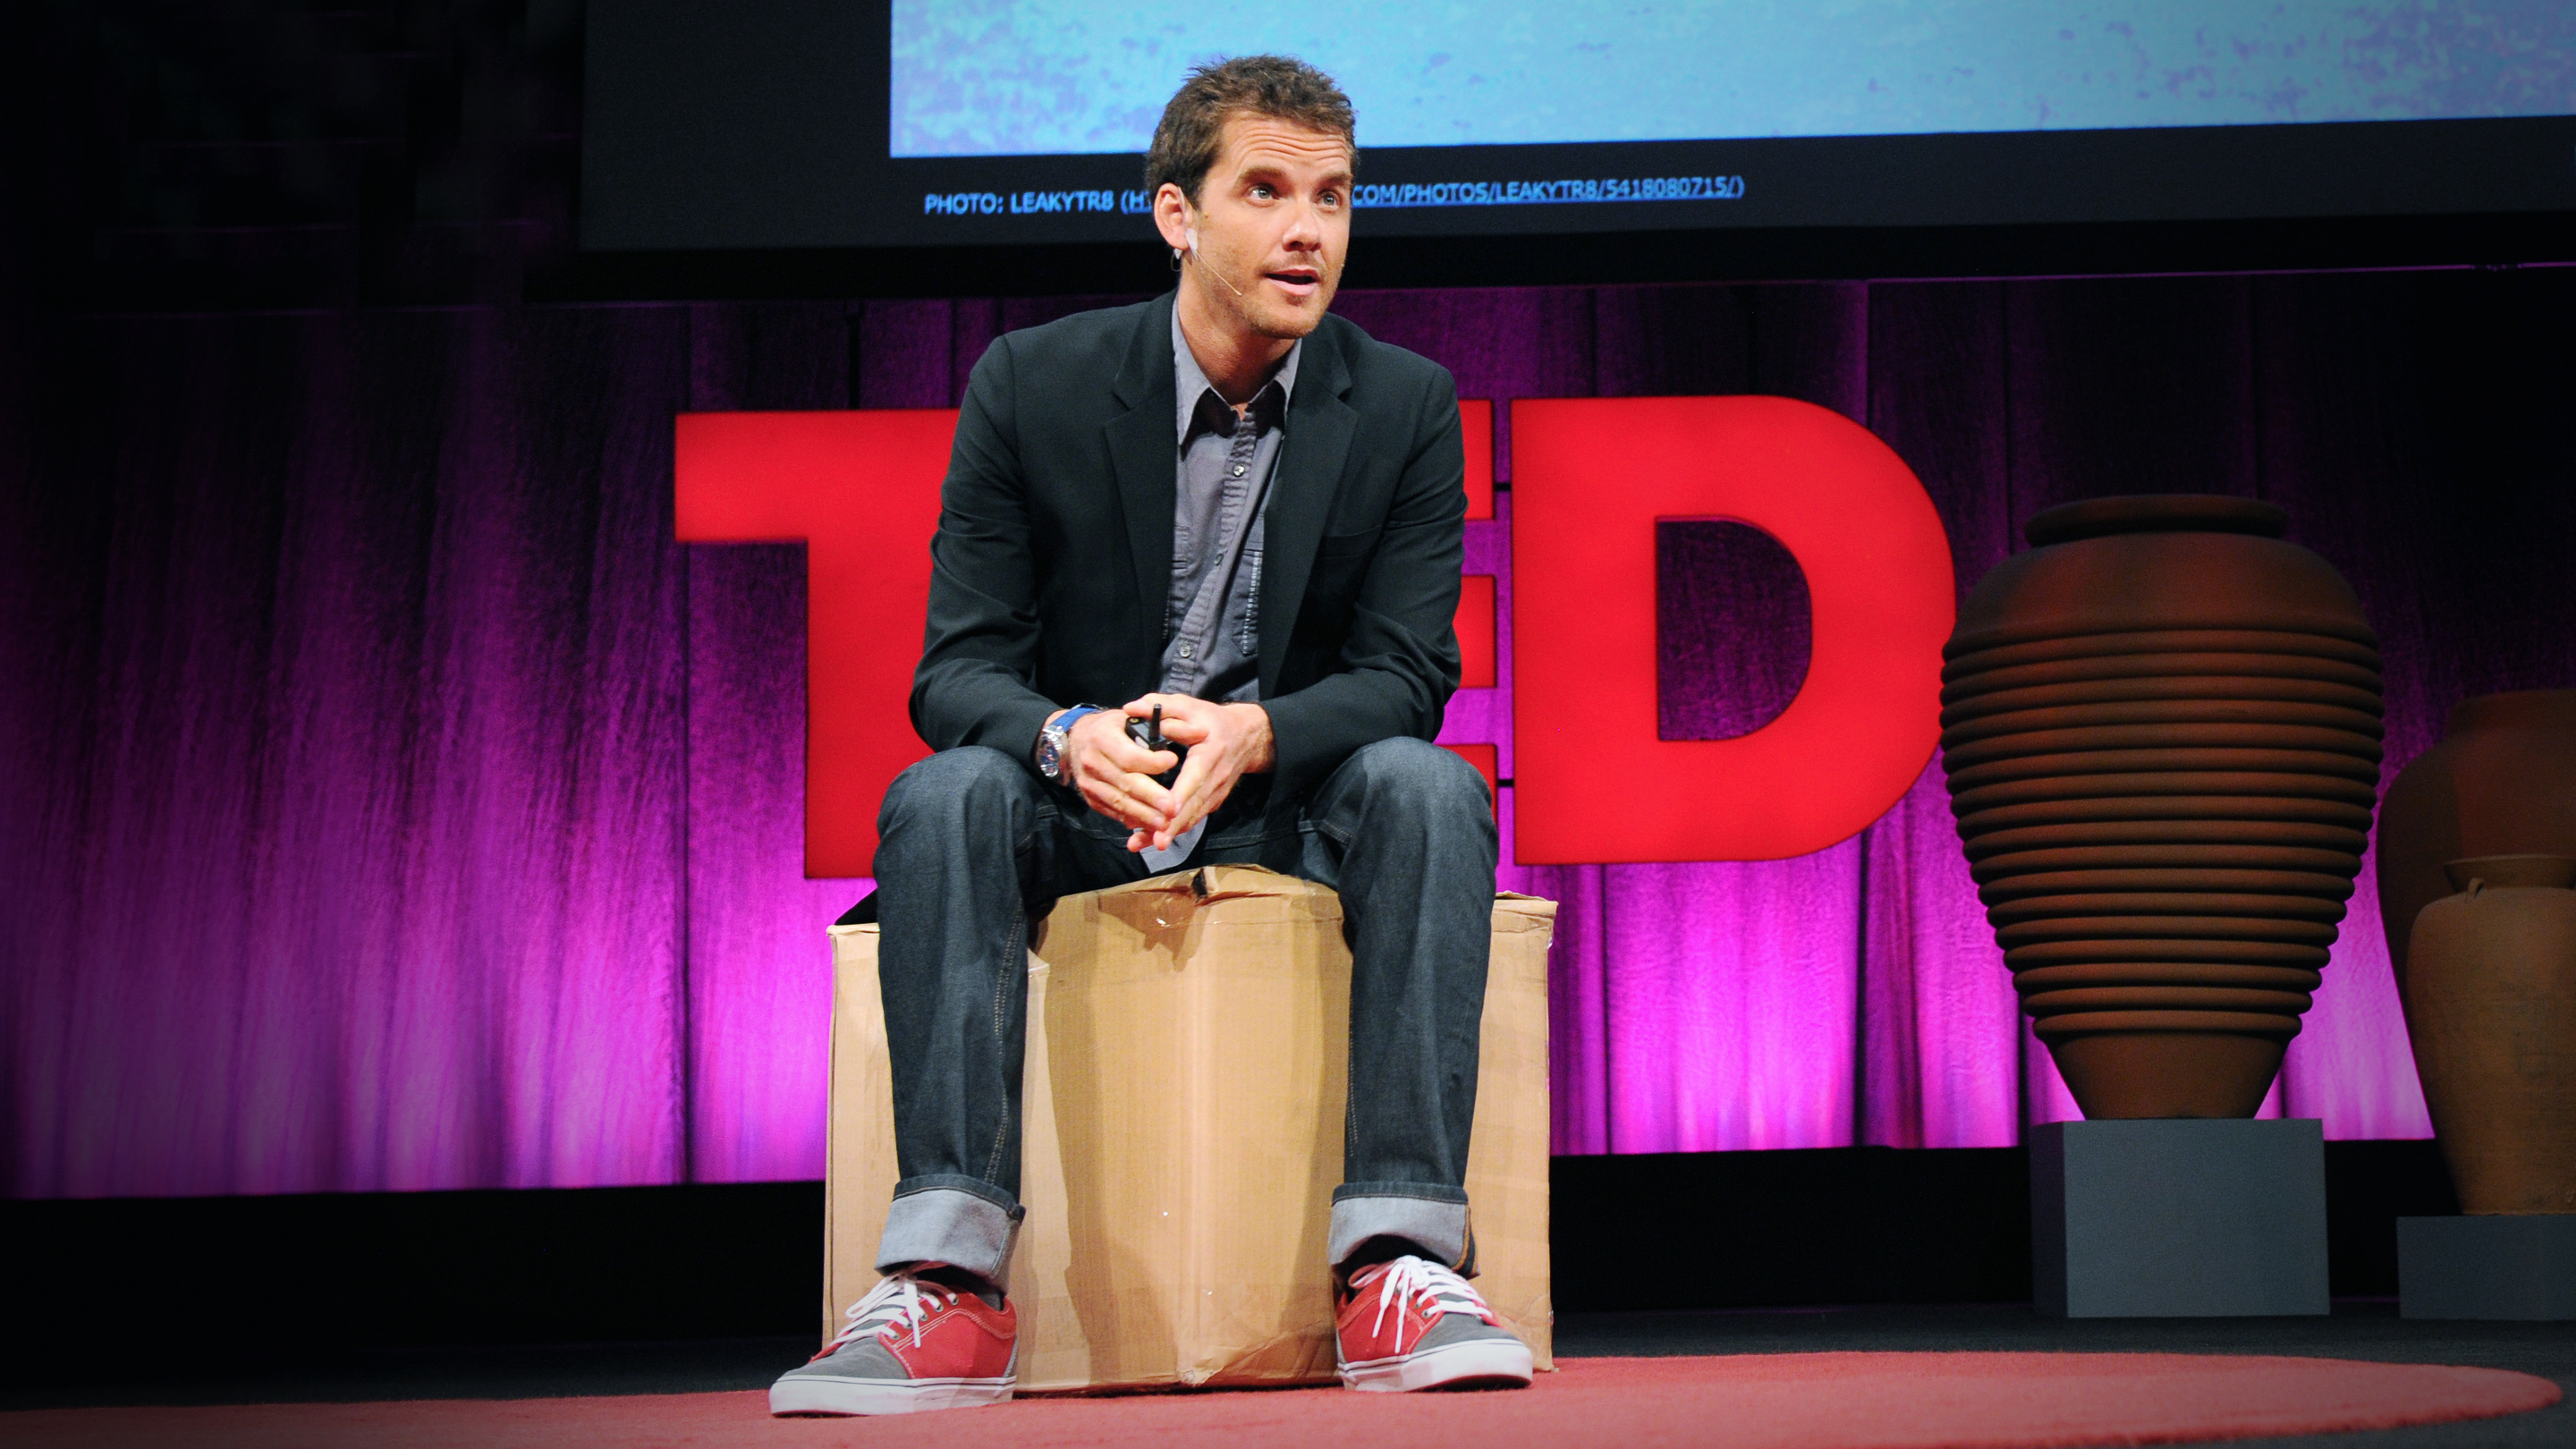 Ted talks official website